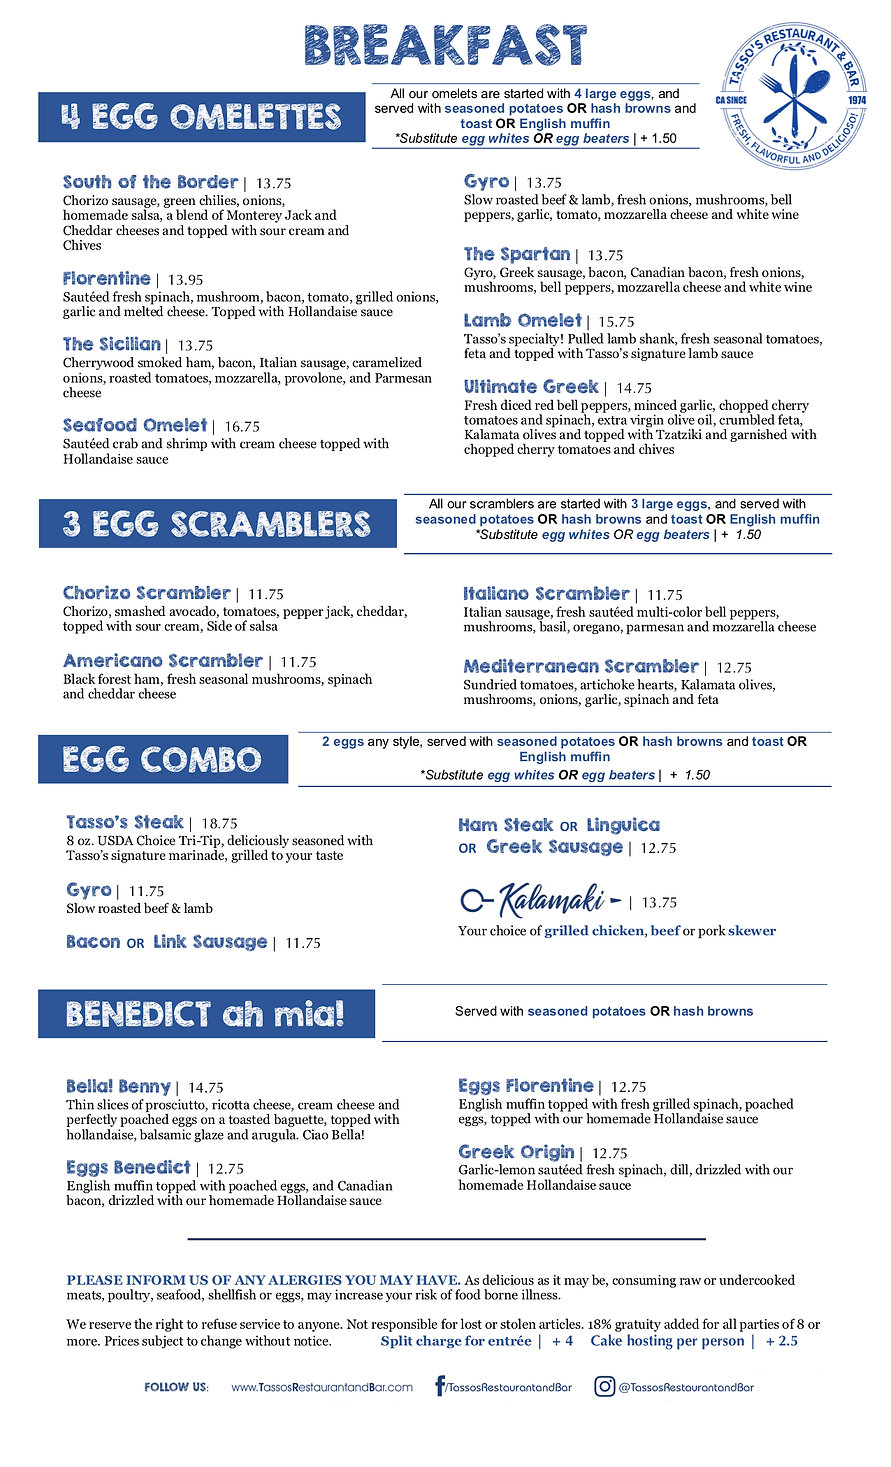 TRB Breakfast Menu PG 1.jpg